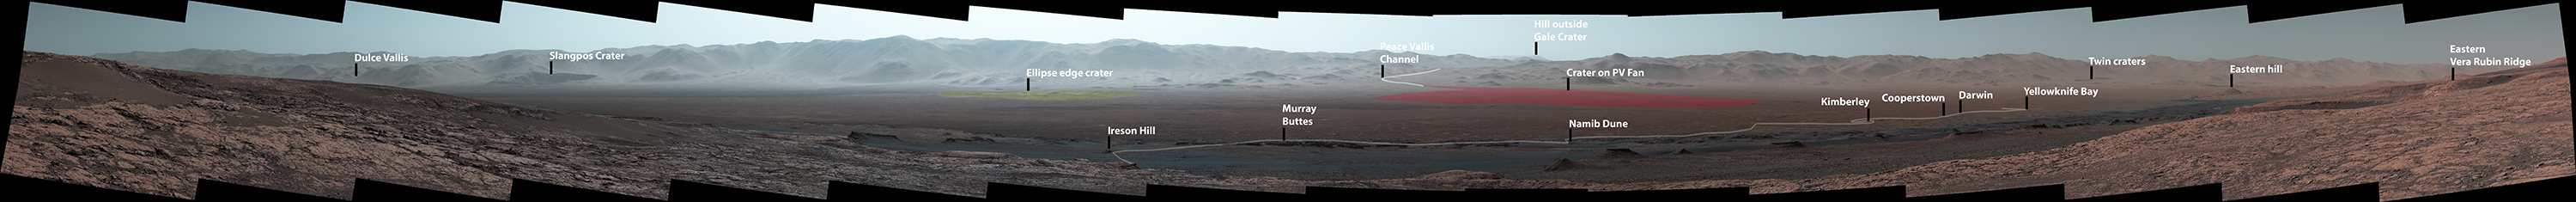 Wide-Angle Panorama from Ridge in Mars' Gale Crater (Labeled)